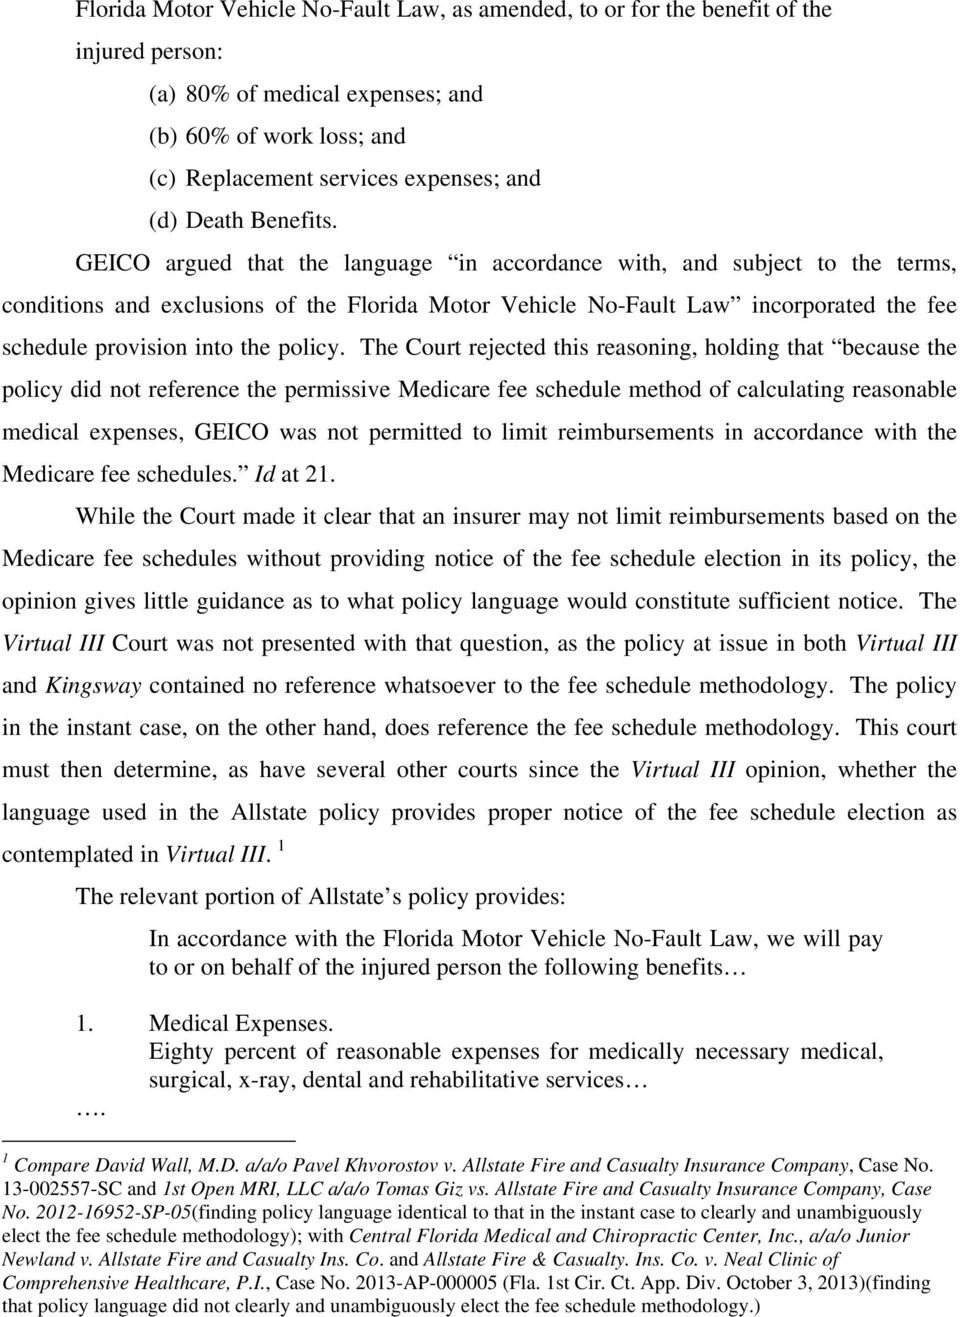 GEICO argued that the language in accordance with, and subject to the terms, conditions and exclusions of the Florida Motor Vehicle No-Fault Law incorporated the fee schedule provision into the